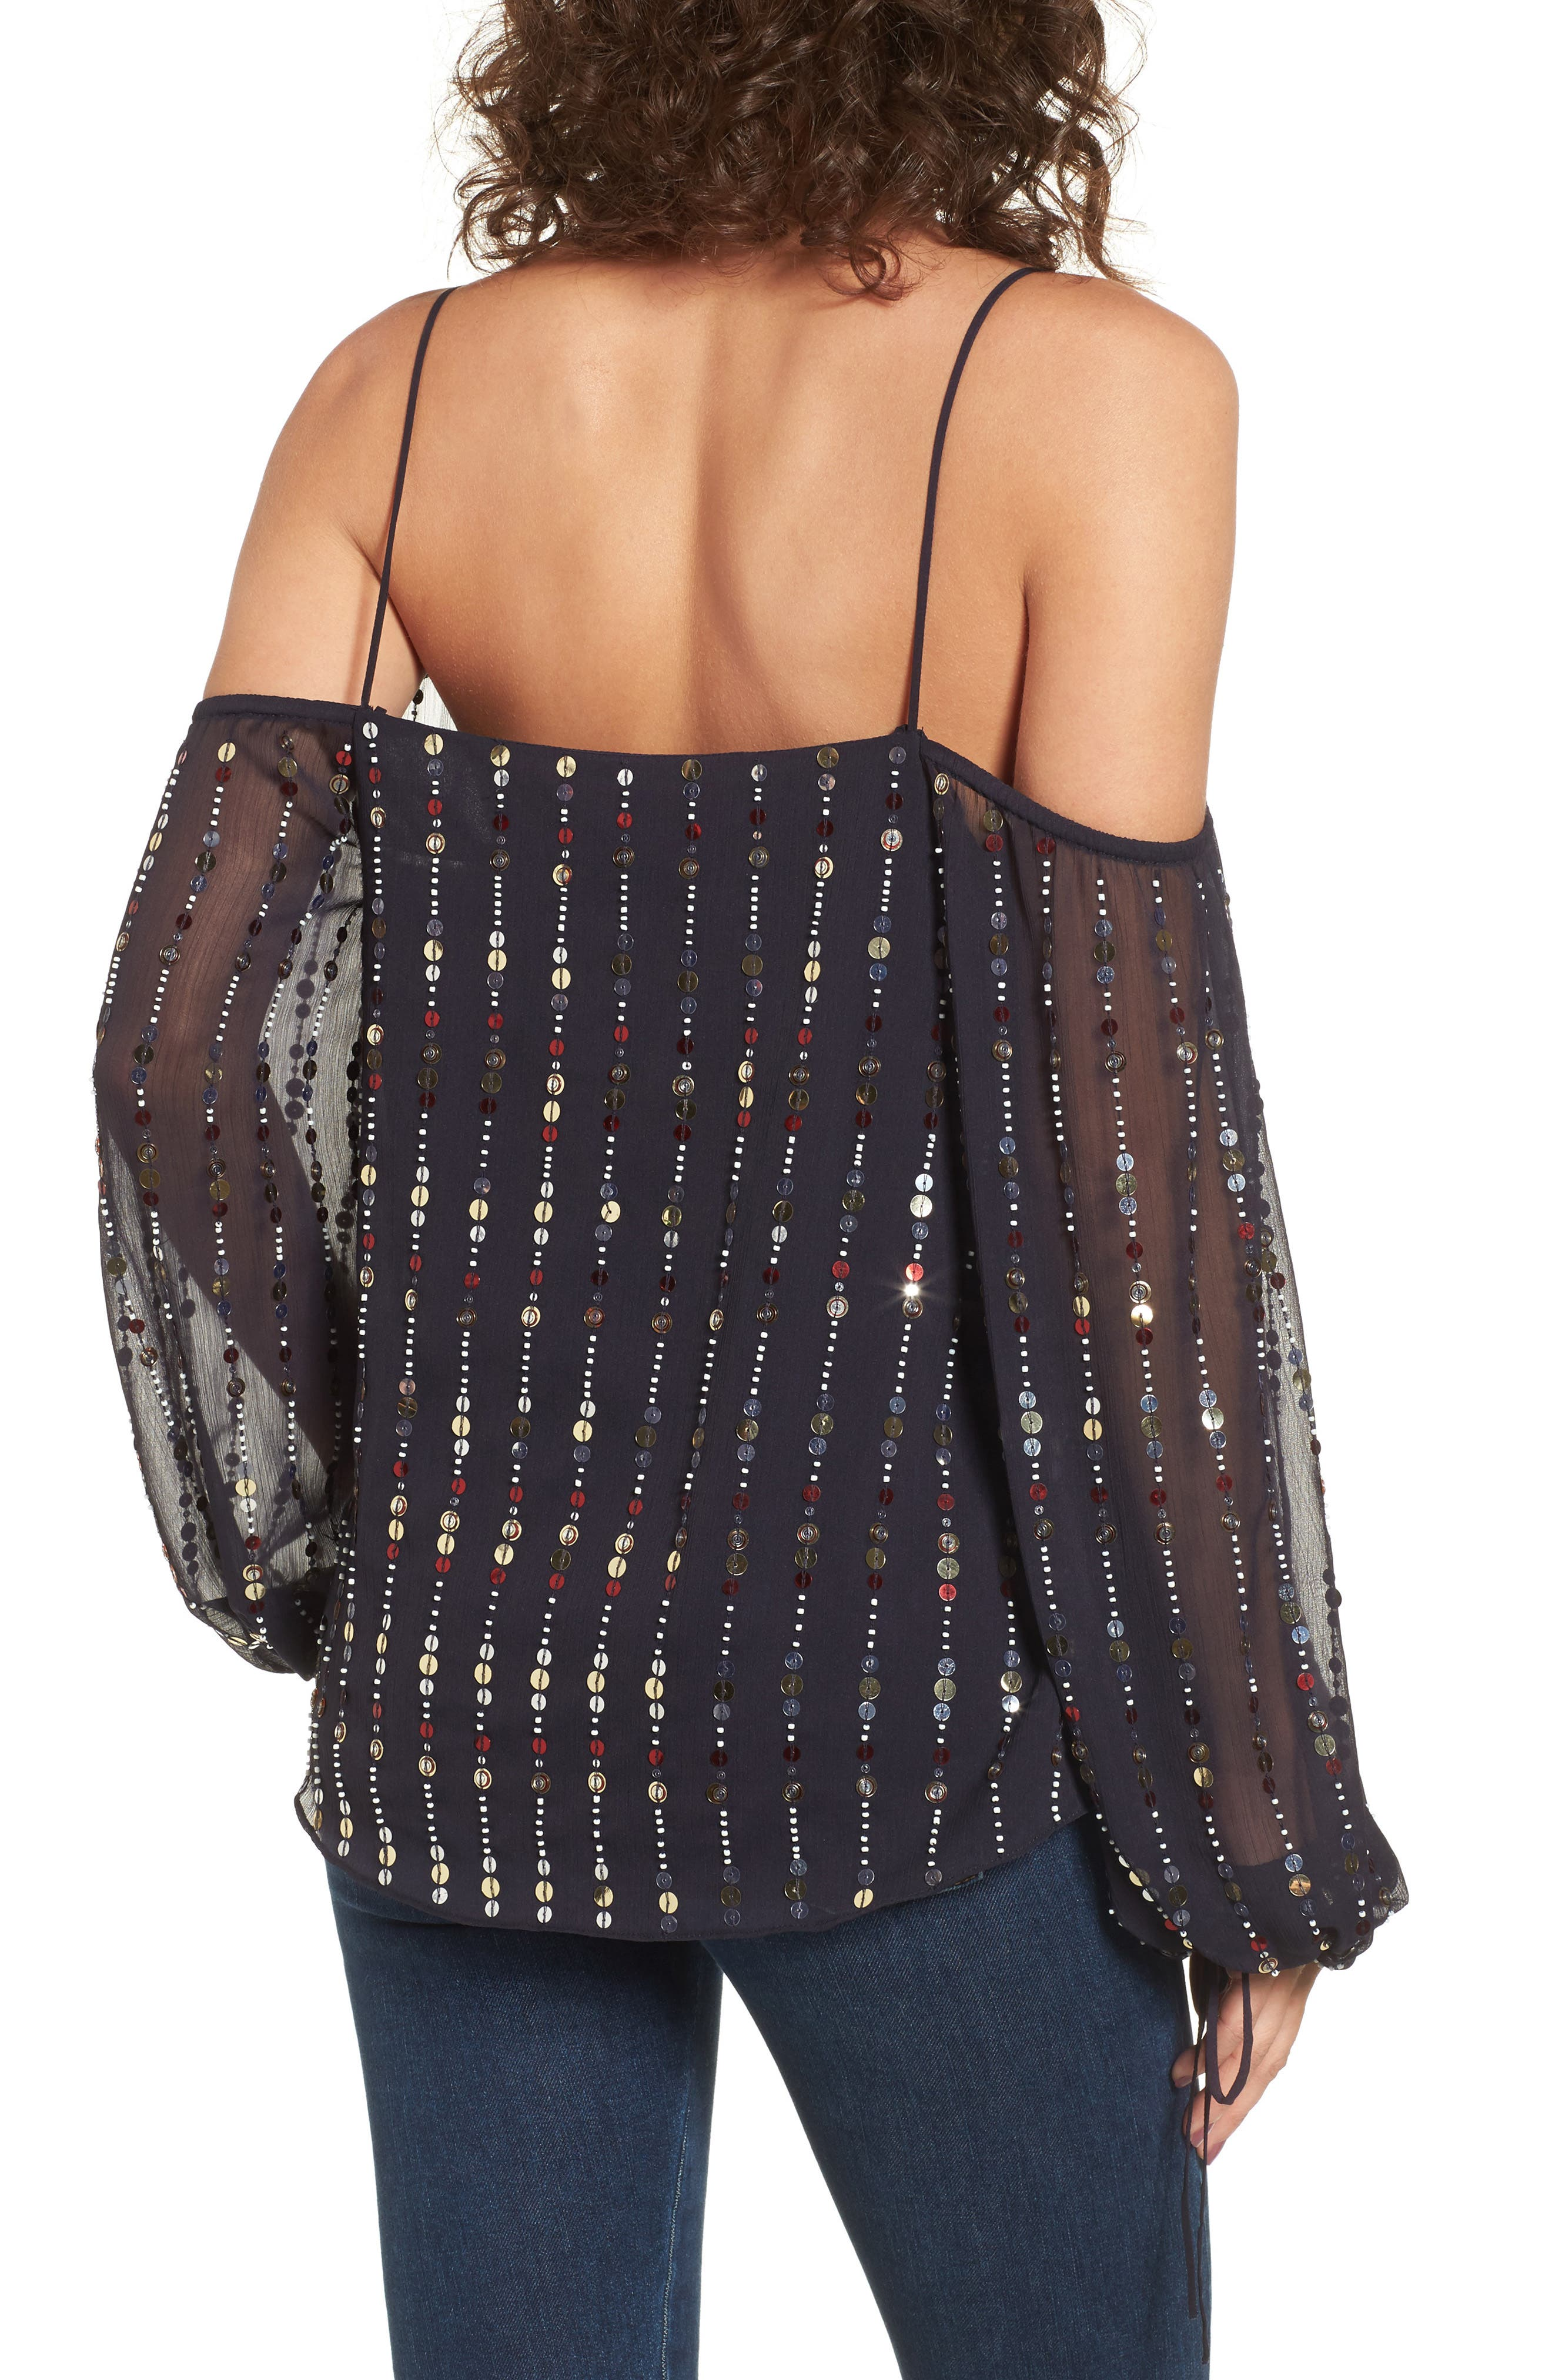 Cleo Sequin Date Night Blouse,                             Alternate thumbnail 2, color,                             410